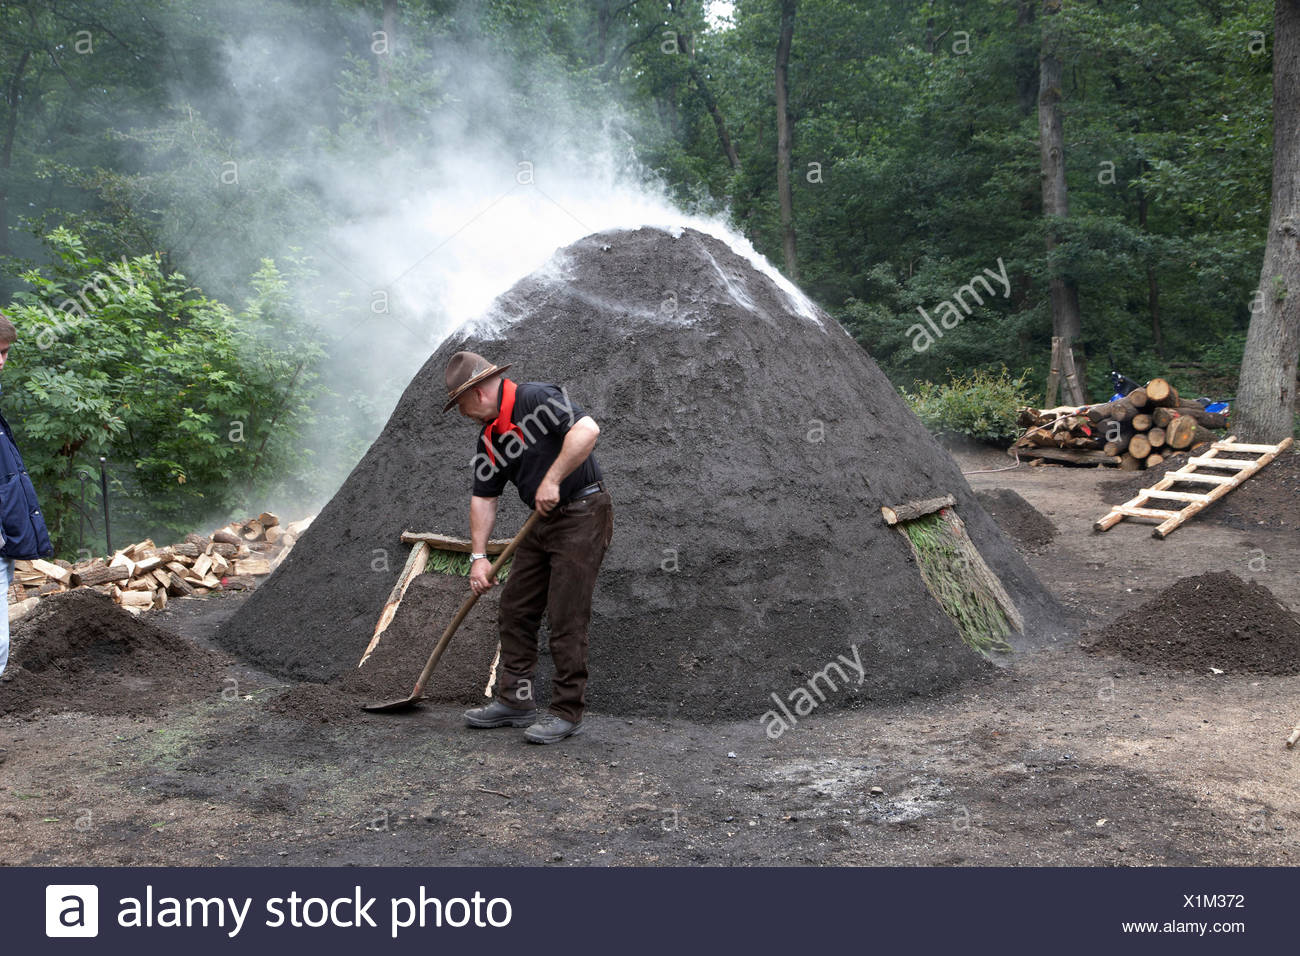 Charburner working on a charcoal kiln, demonstration during the Koehlertage or charcoal burner days Boppard for the conservation - Stock Image